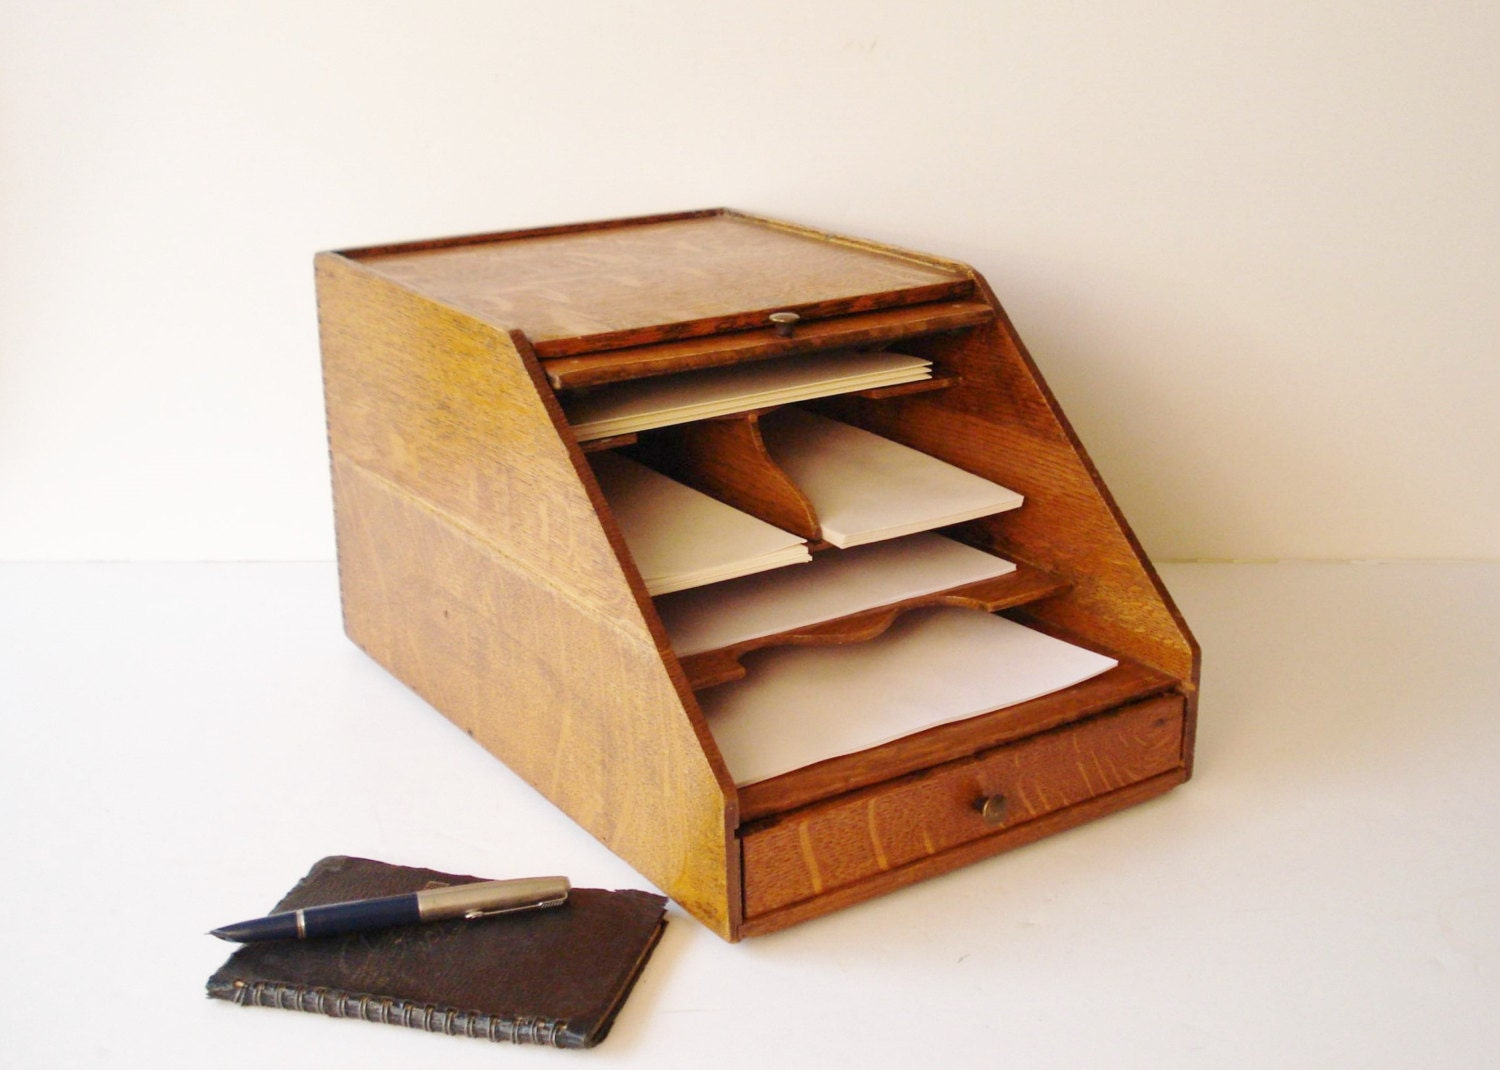 Antique Desk Stationery Organizer Weis Letter Sorter